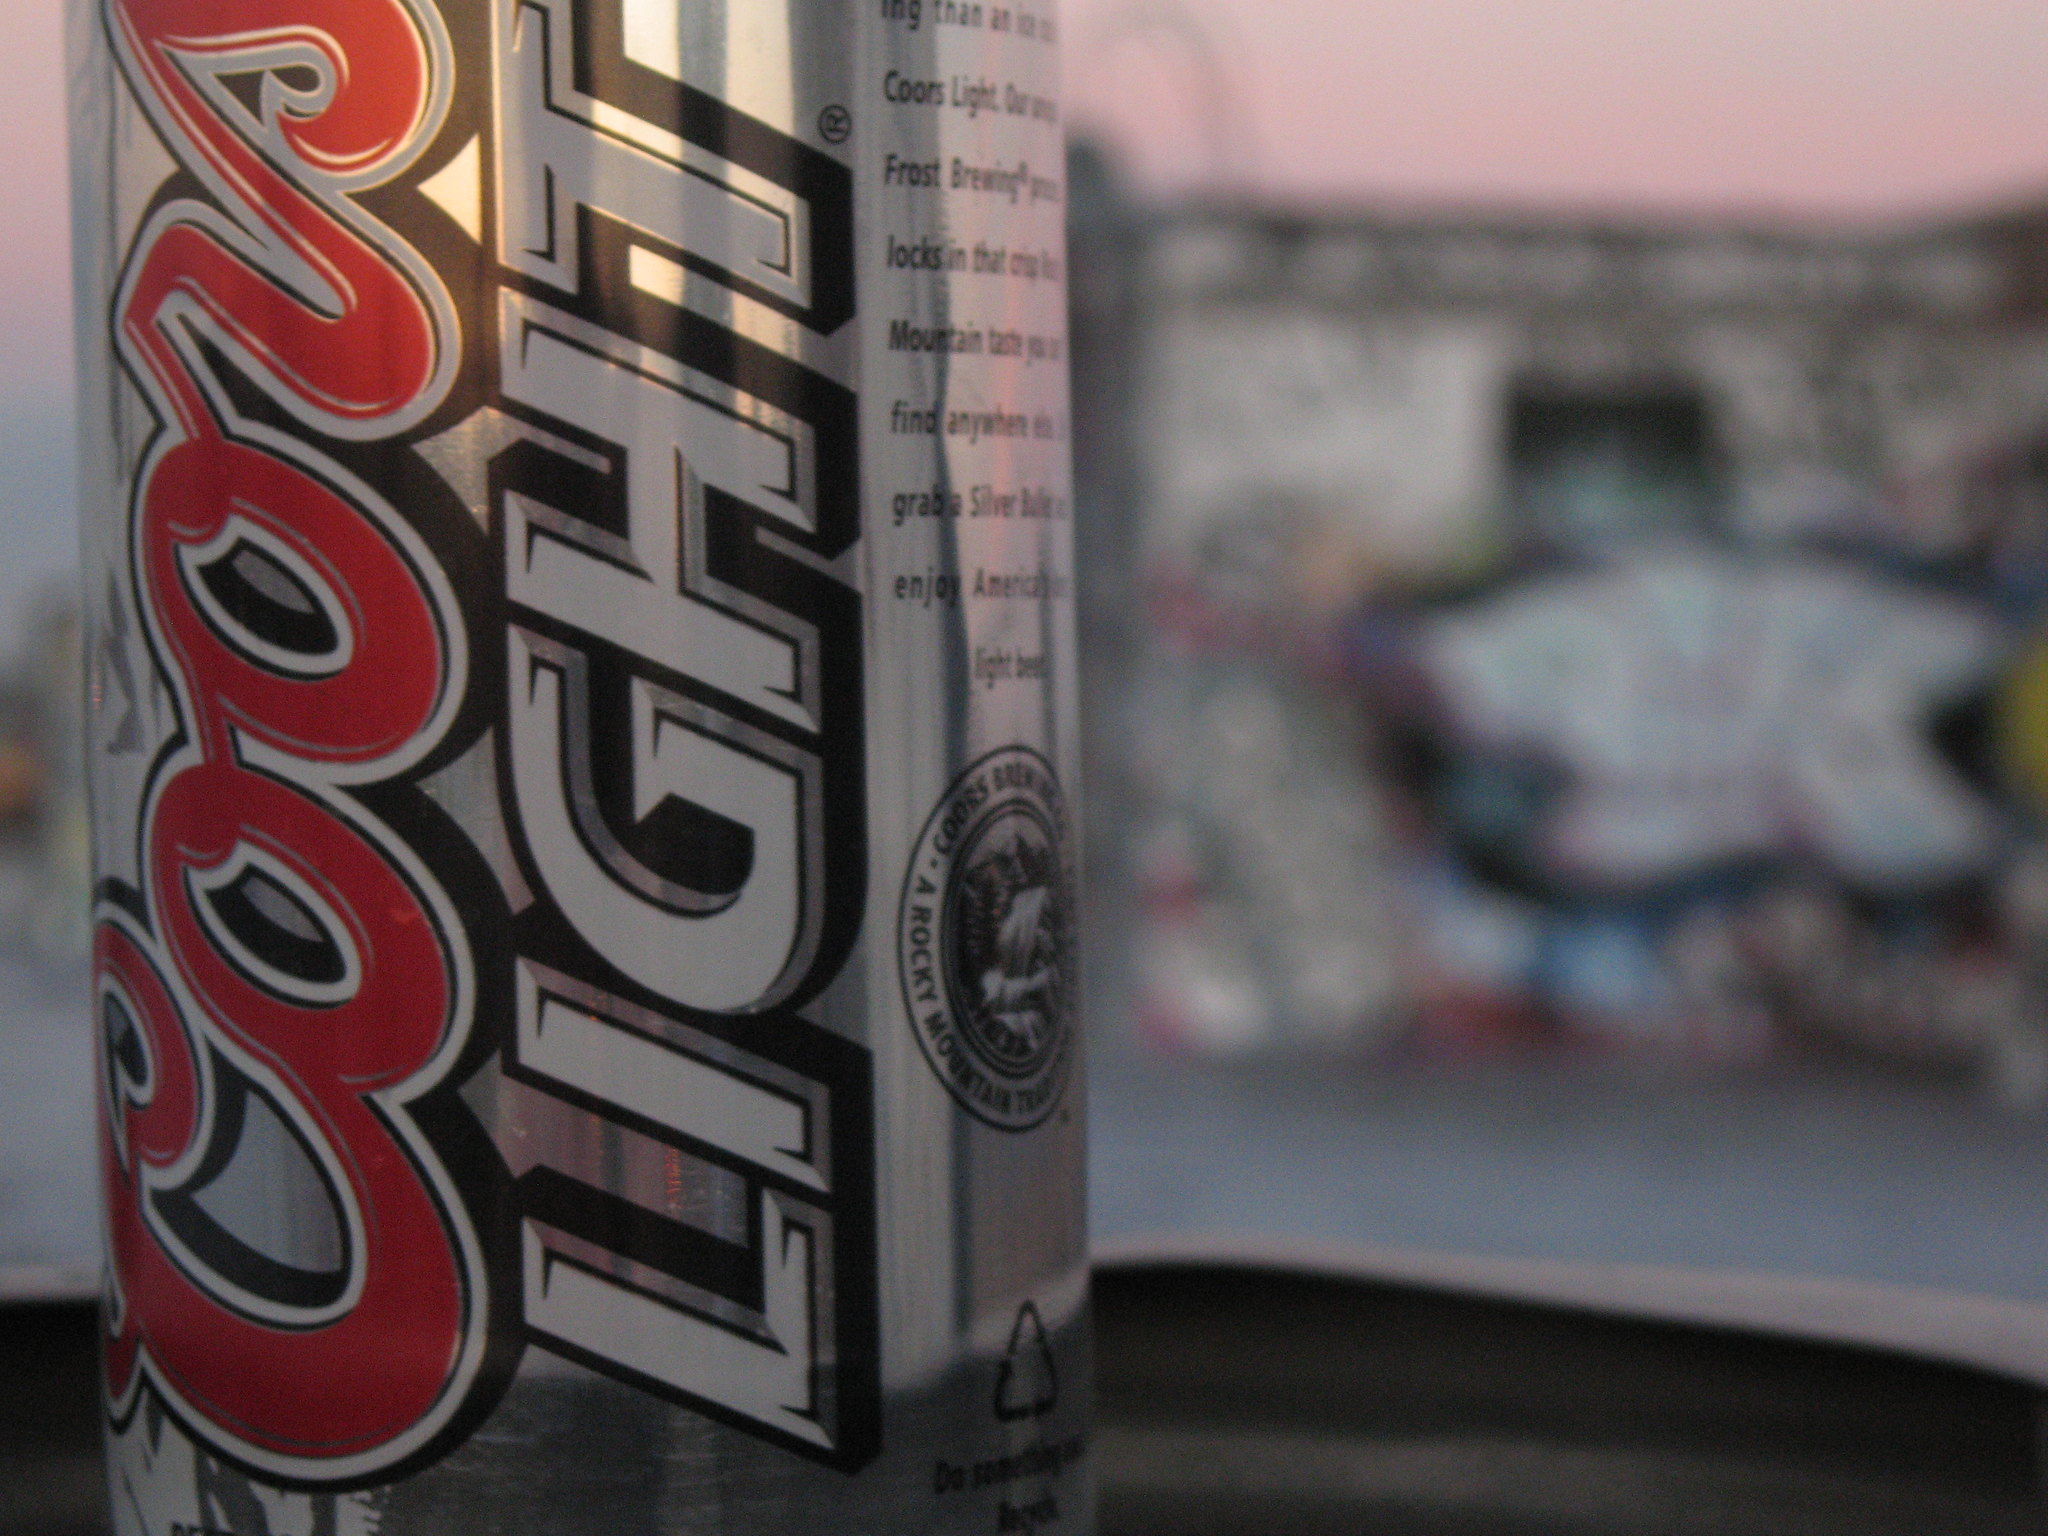 Coors Light Sends Olive Veronesi 150 Beers After Viral Plea During The Coronavirus Pandemic